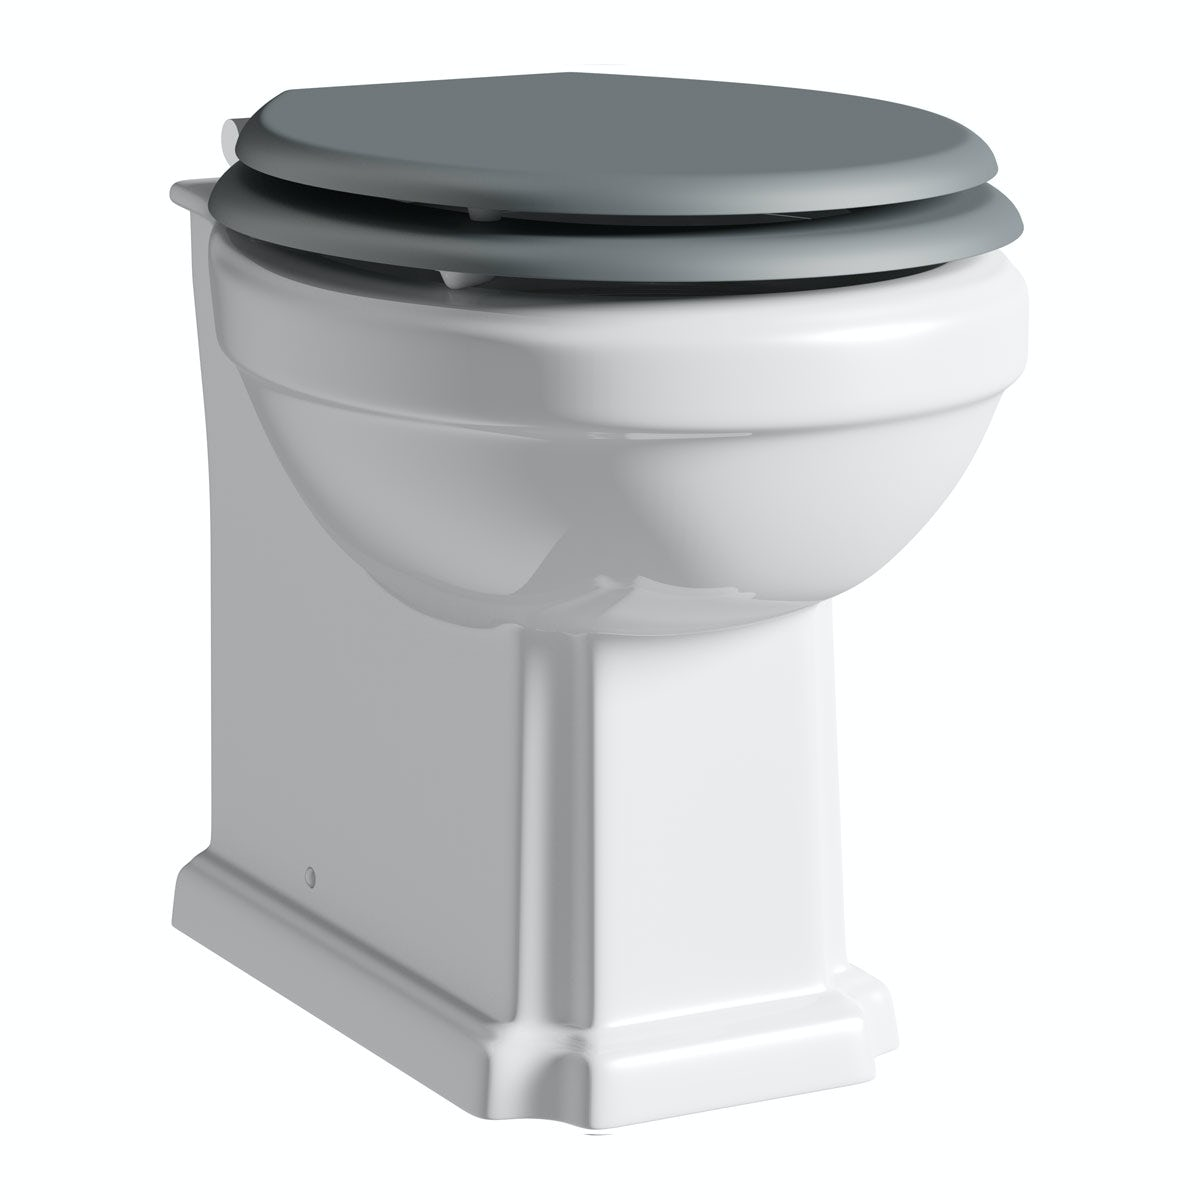 The Bath Co. Camberley back to wall toilet with satin grey soft close seat